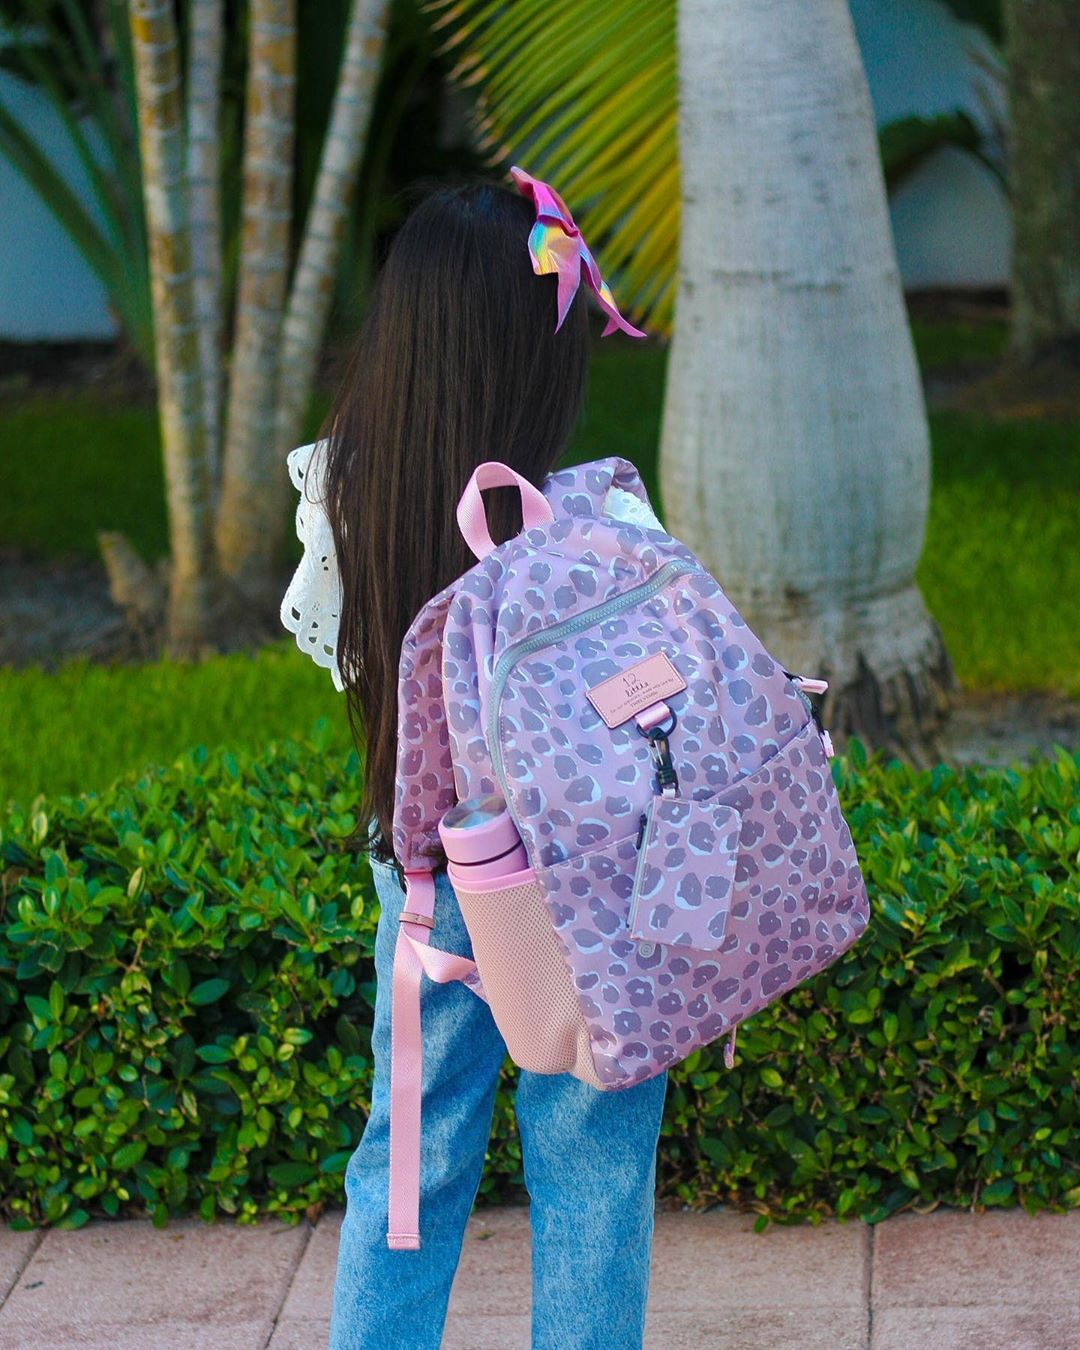 Our NEW Adventure Backpack in Pink Leopard is un-FURR-getable and sure to make heads turn! #backtoschool #schoolsupplies #backpack #adventure #musthave #kidsbag #12little @ashleyandmegan__